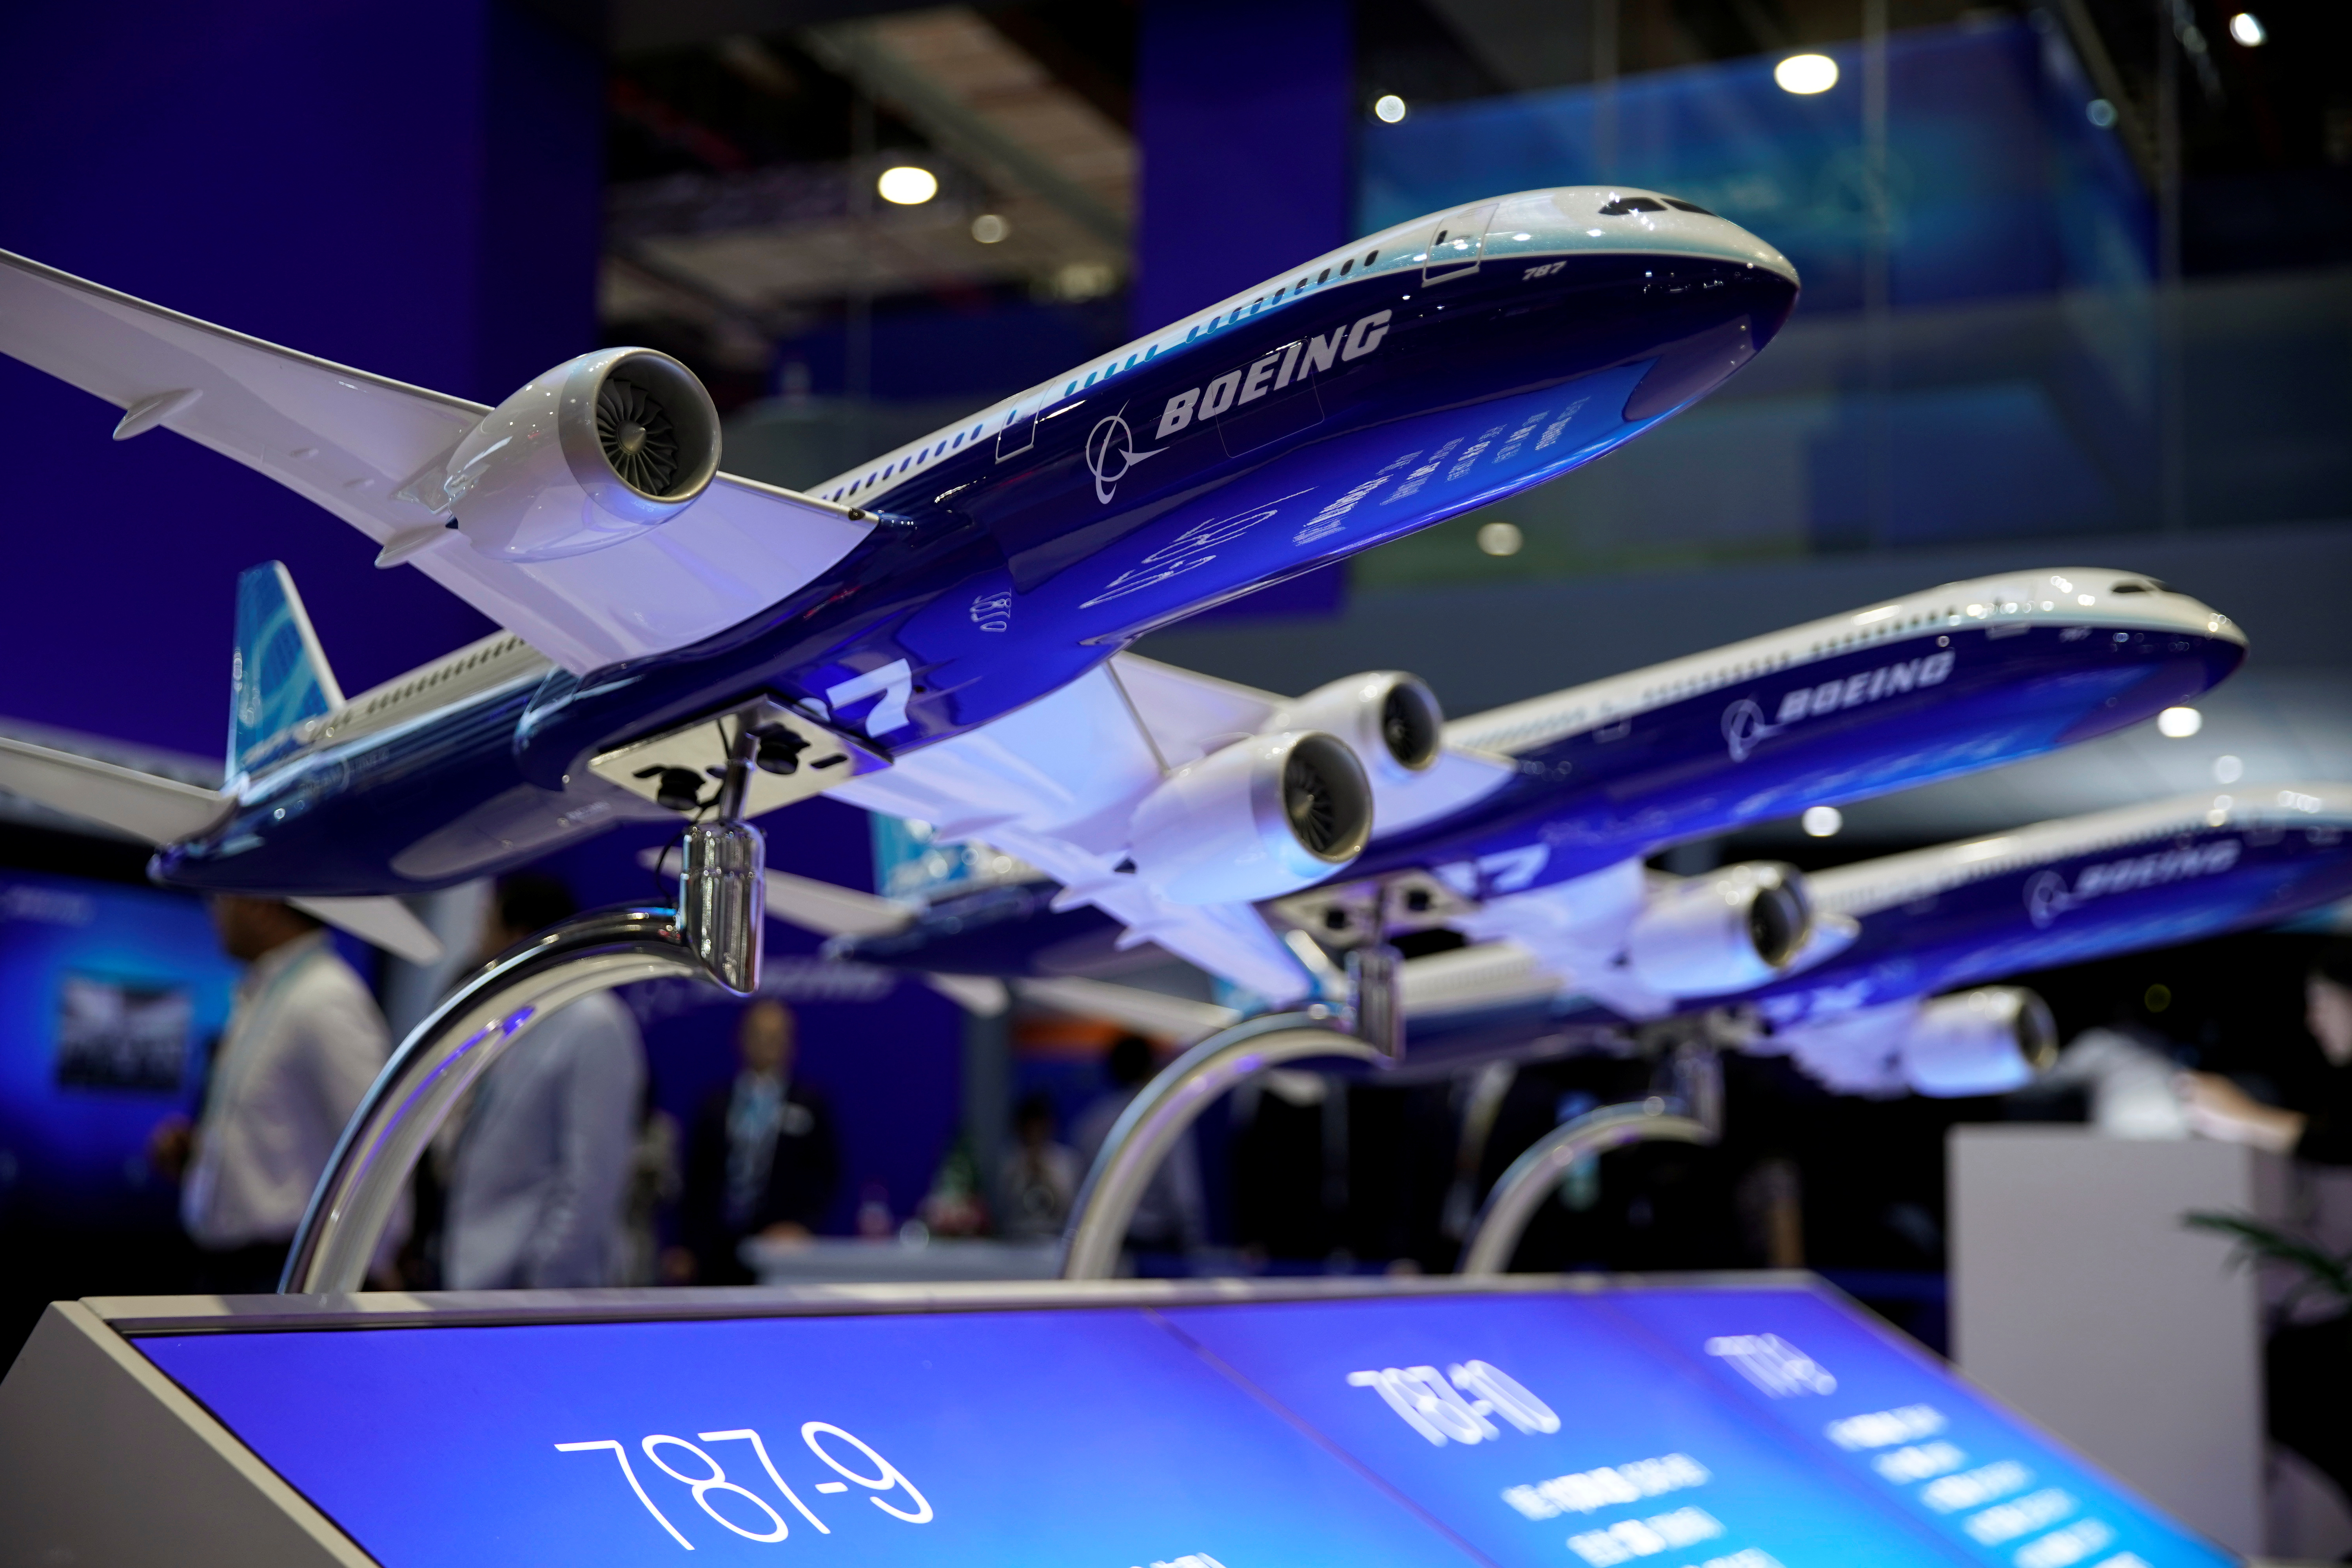 A Boeing model is seen at the second China International Import Expo (CIIE) in Shanghai, China November 6, 2019. Picture taken November 6, 2019. REUTERS/Aly Song